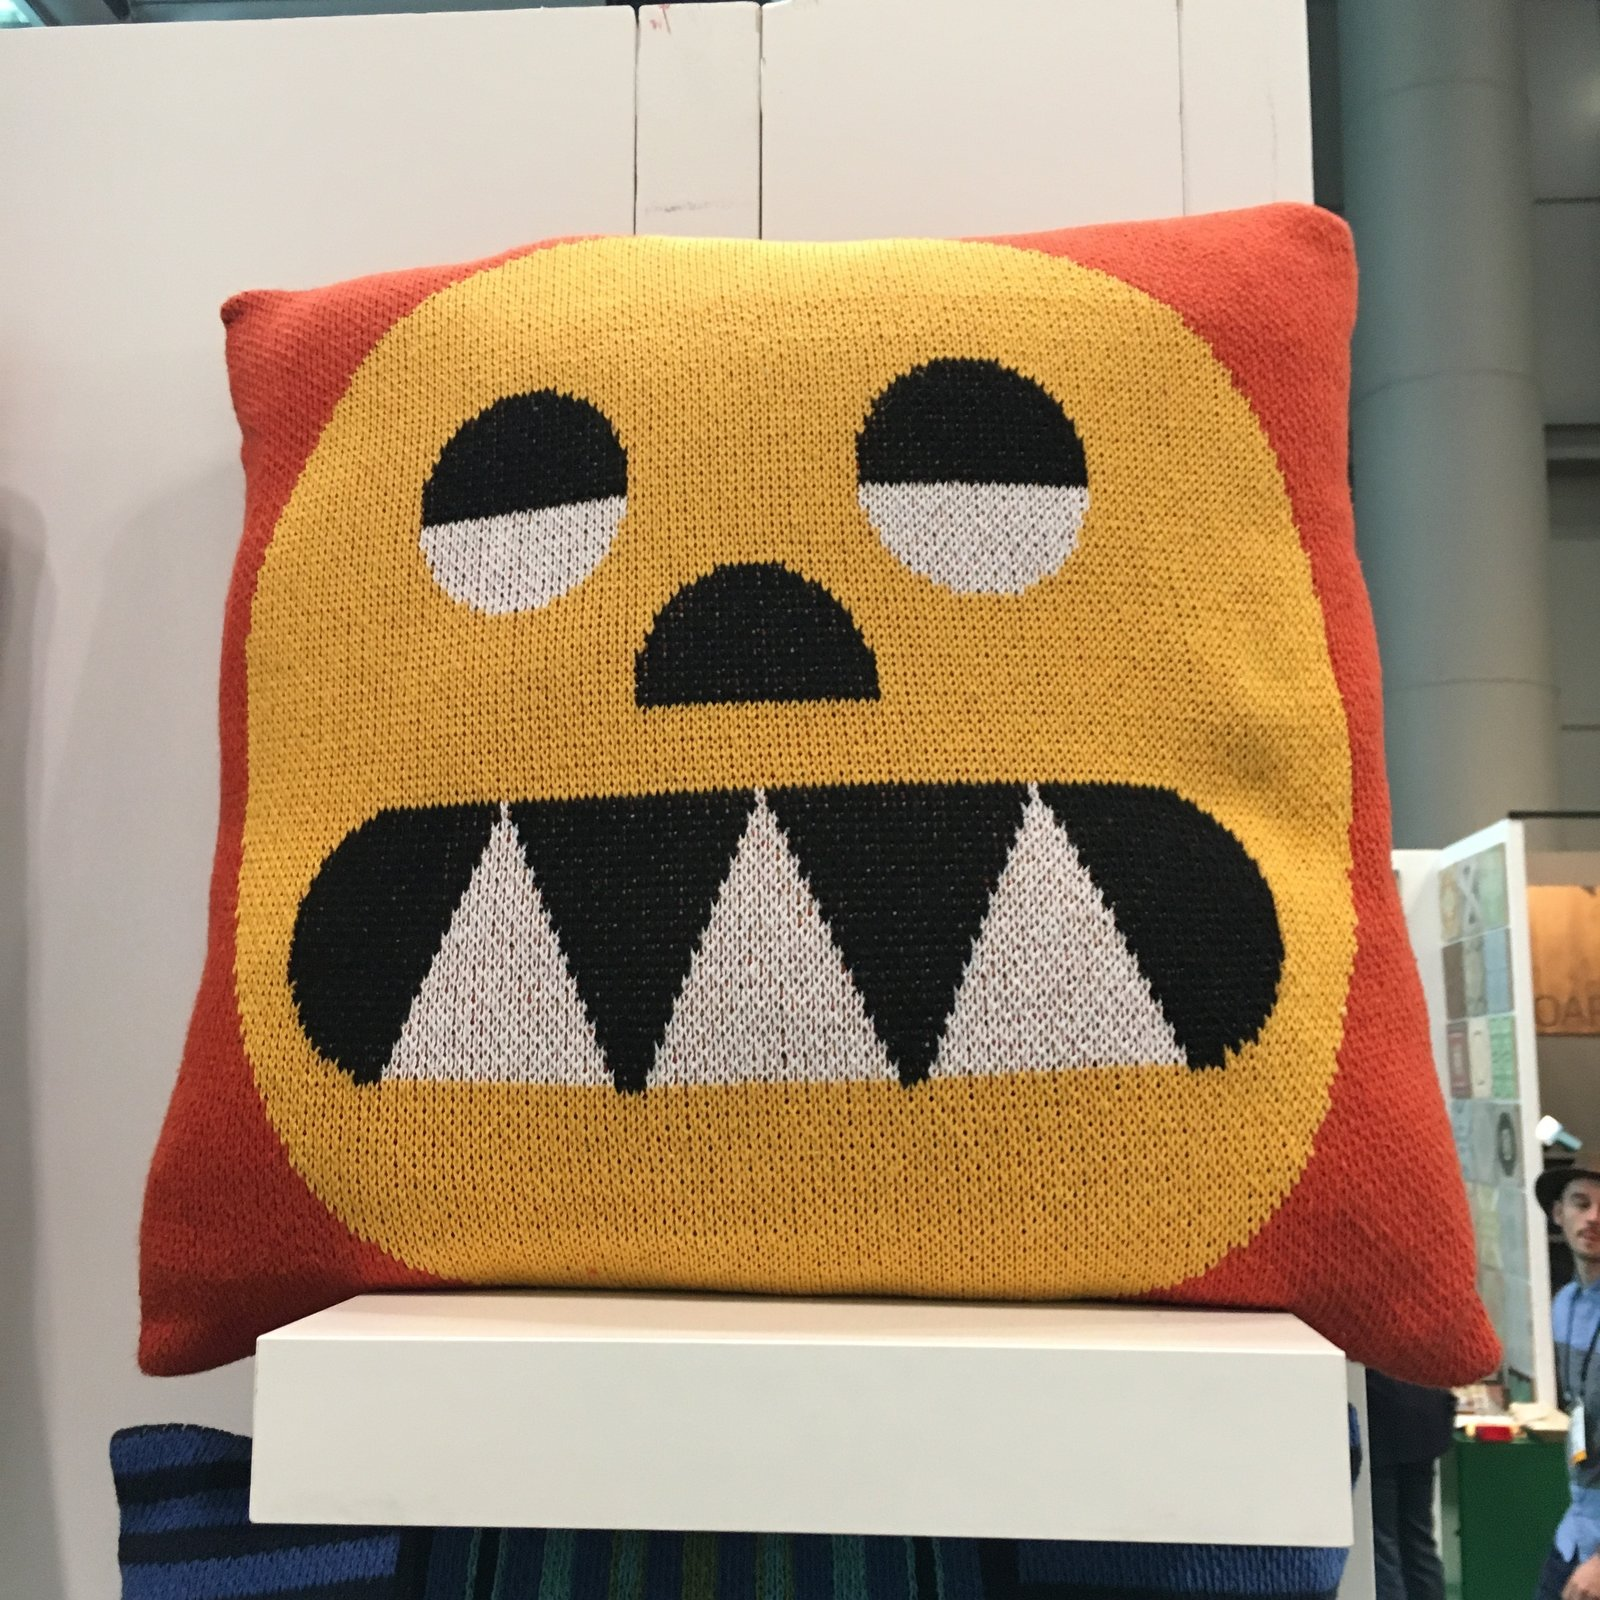 DittoHouse displayed their pillows and blankets at the Milk Stand, which was ICFF's only stoppable area on the show floor. Led by designer Molly Fitzgerald, DittoHouse utilizes pre- and post-consumer textile waste for their products. They do not introduce new dyes, which eliminates water waste and chemical run-off. Everything is made in the USA. The Best of New York Design Week 2017 - Photo 17 of 36